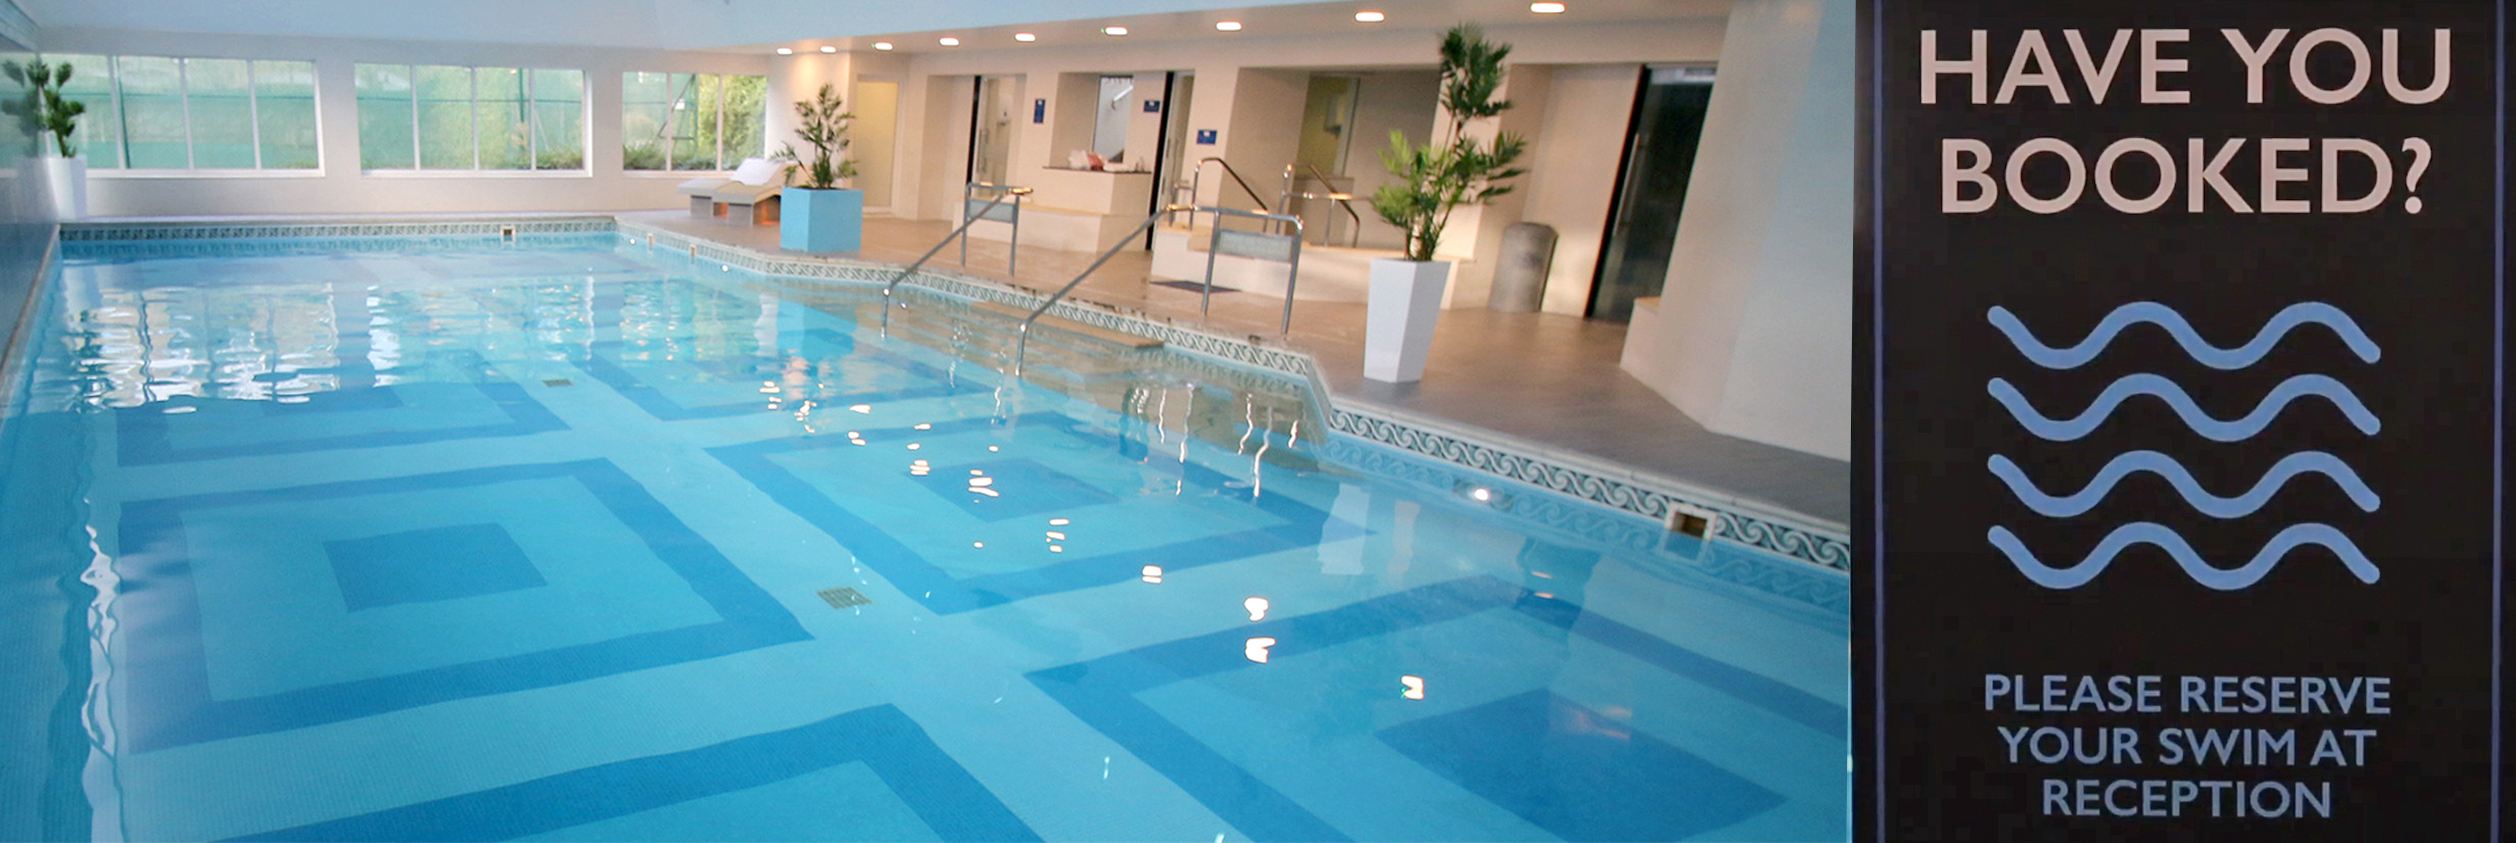 swimming pool Hogarth chiswick book online